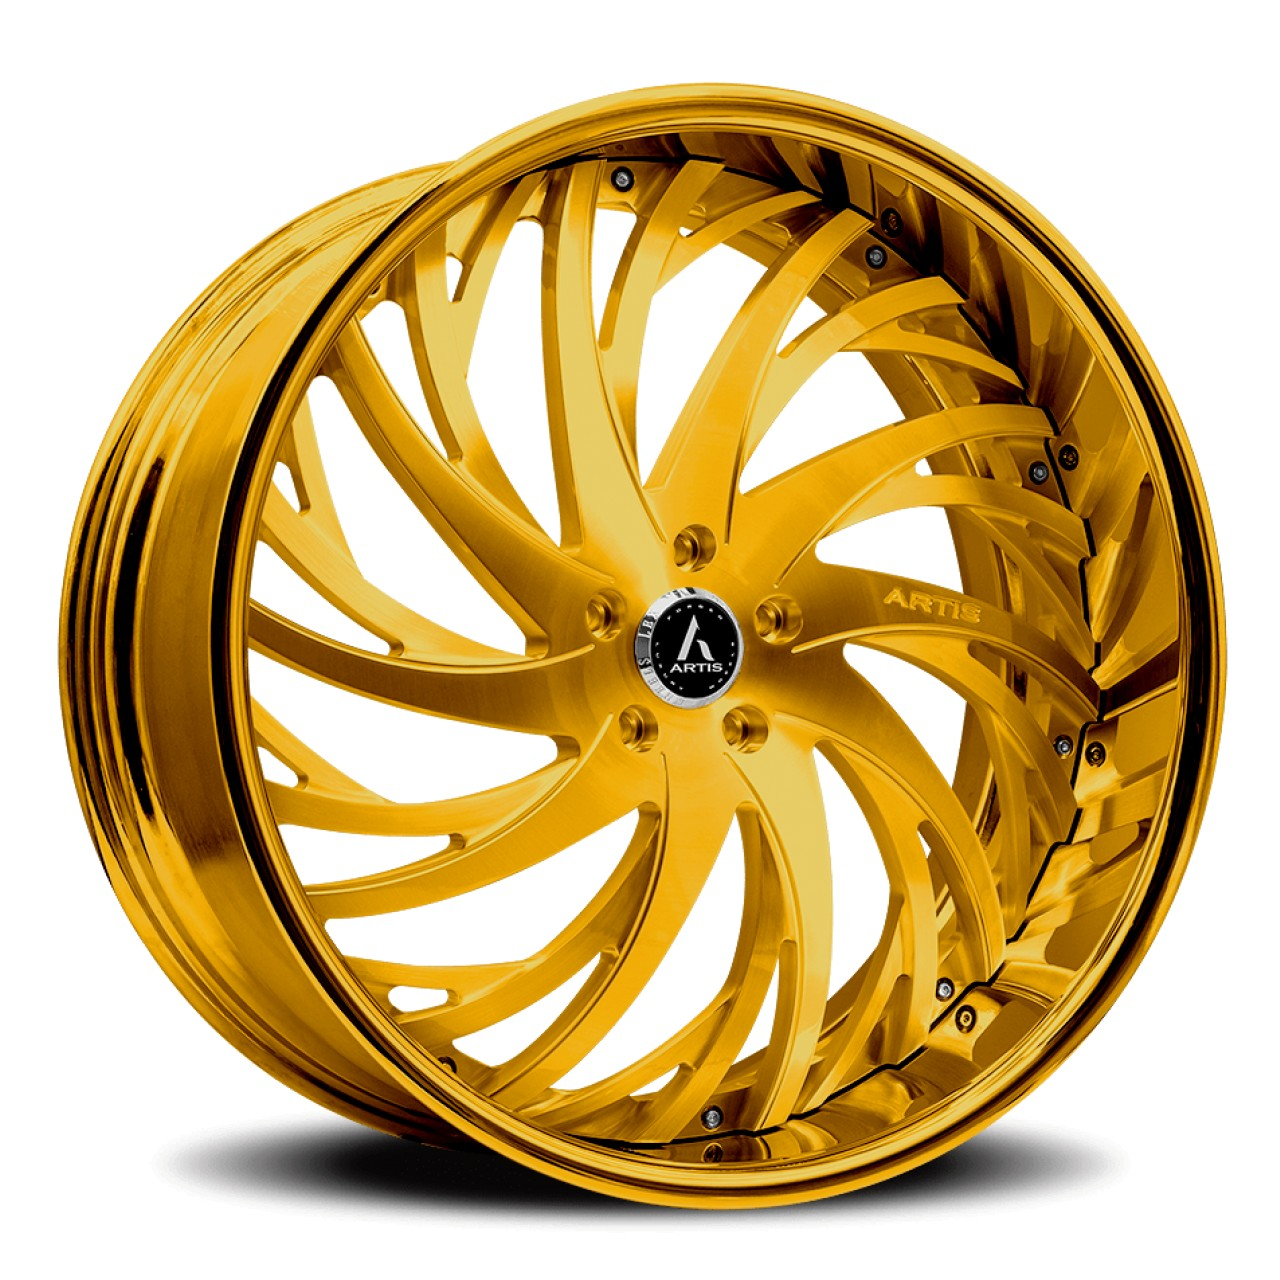 Artis Forged Decatur wheel with Gold finish